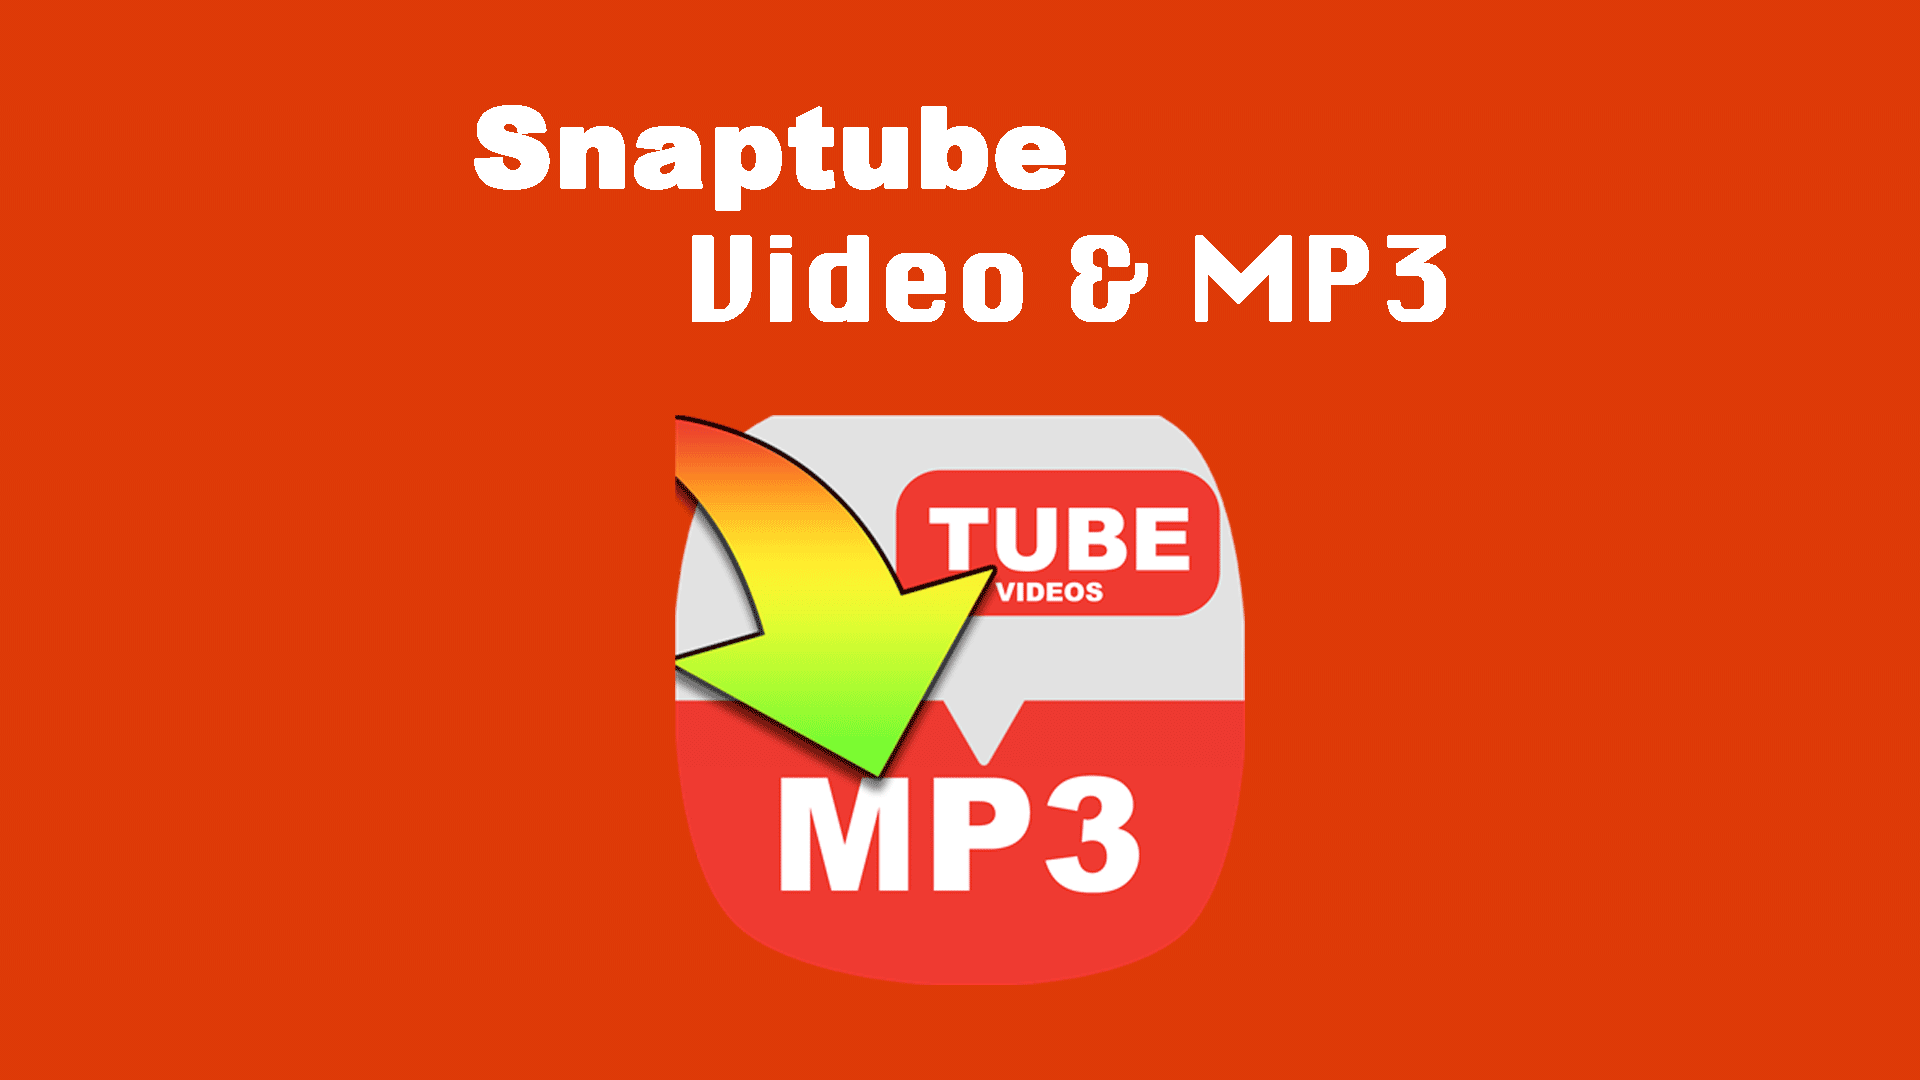 Get Snaptube Video Mp3 Download Microsoft Store